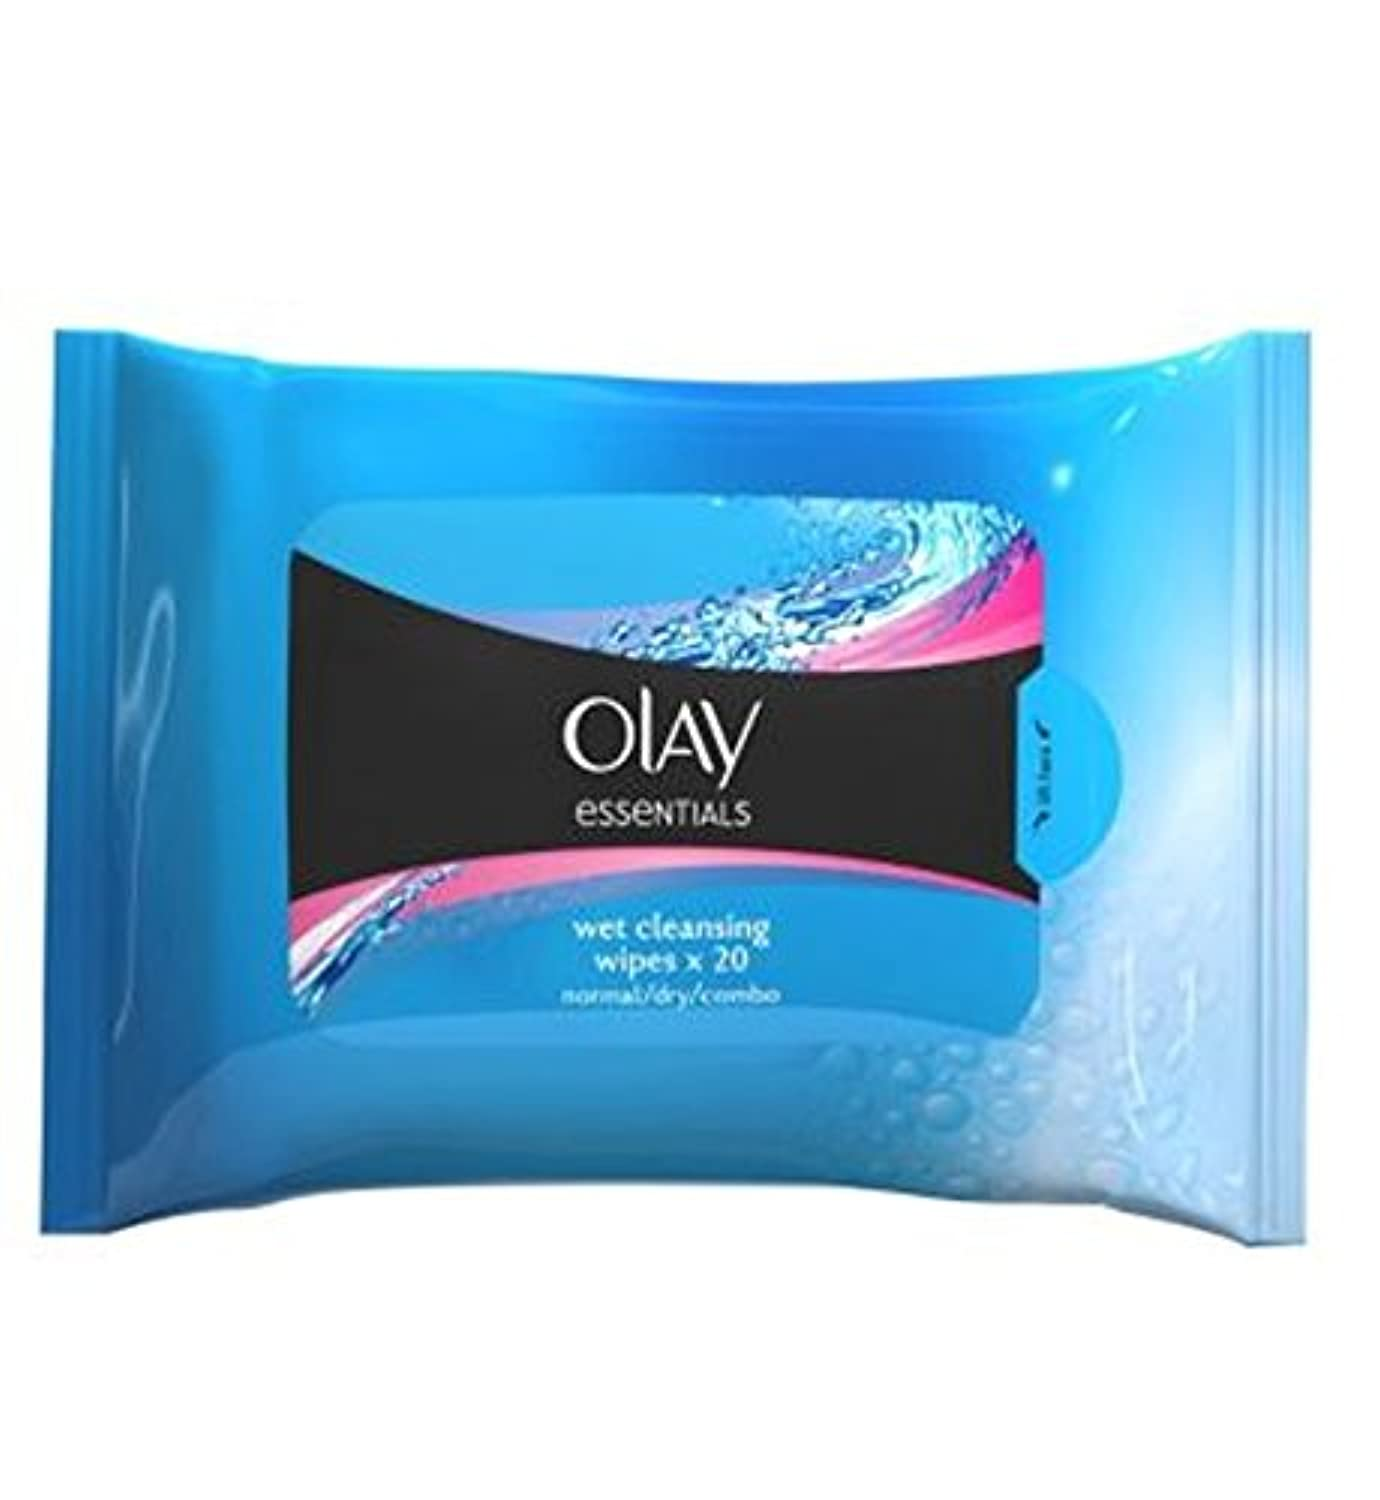 Olay Facial Normal Skin Cleansing Wipes in Resealable Pouch x20 - オーレイ顔の正常な皮膚のクレンジングは、再シール可能なポーチX20にワイプ (Olay)...